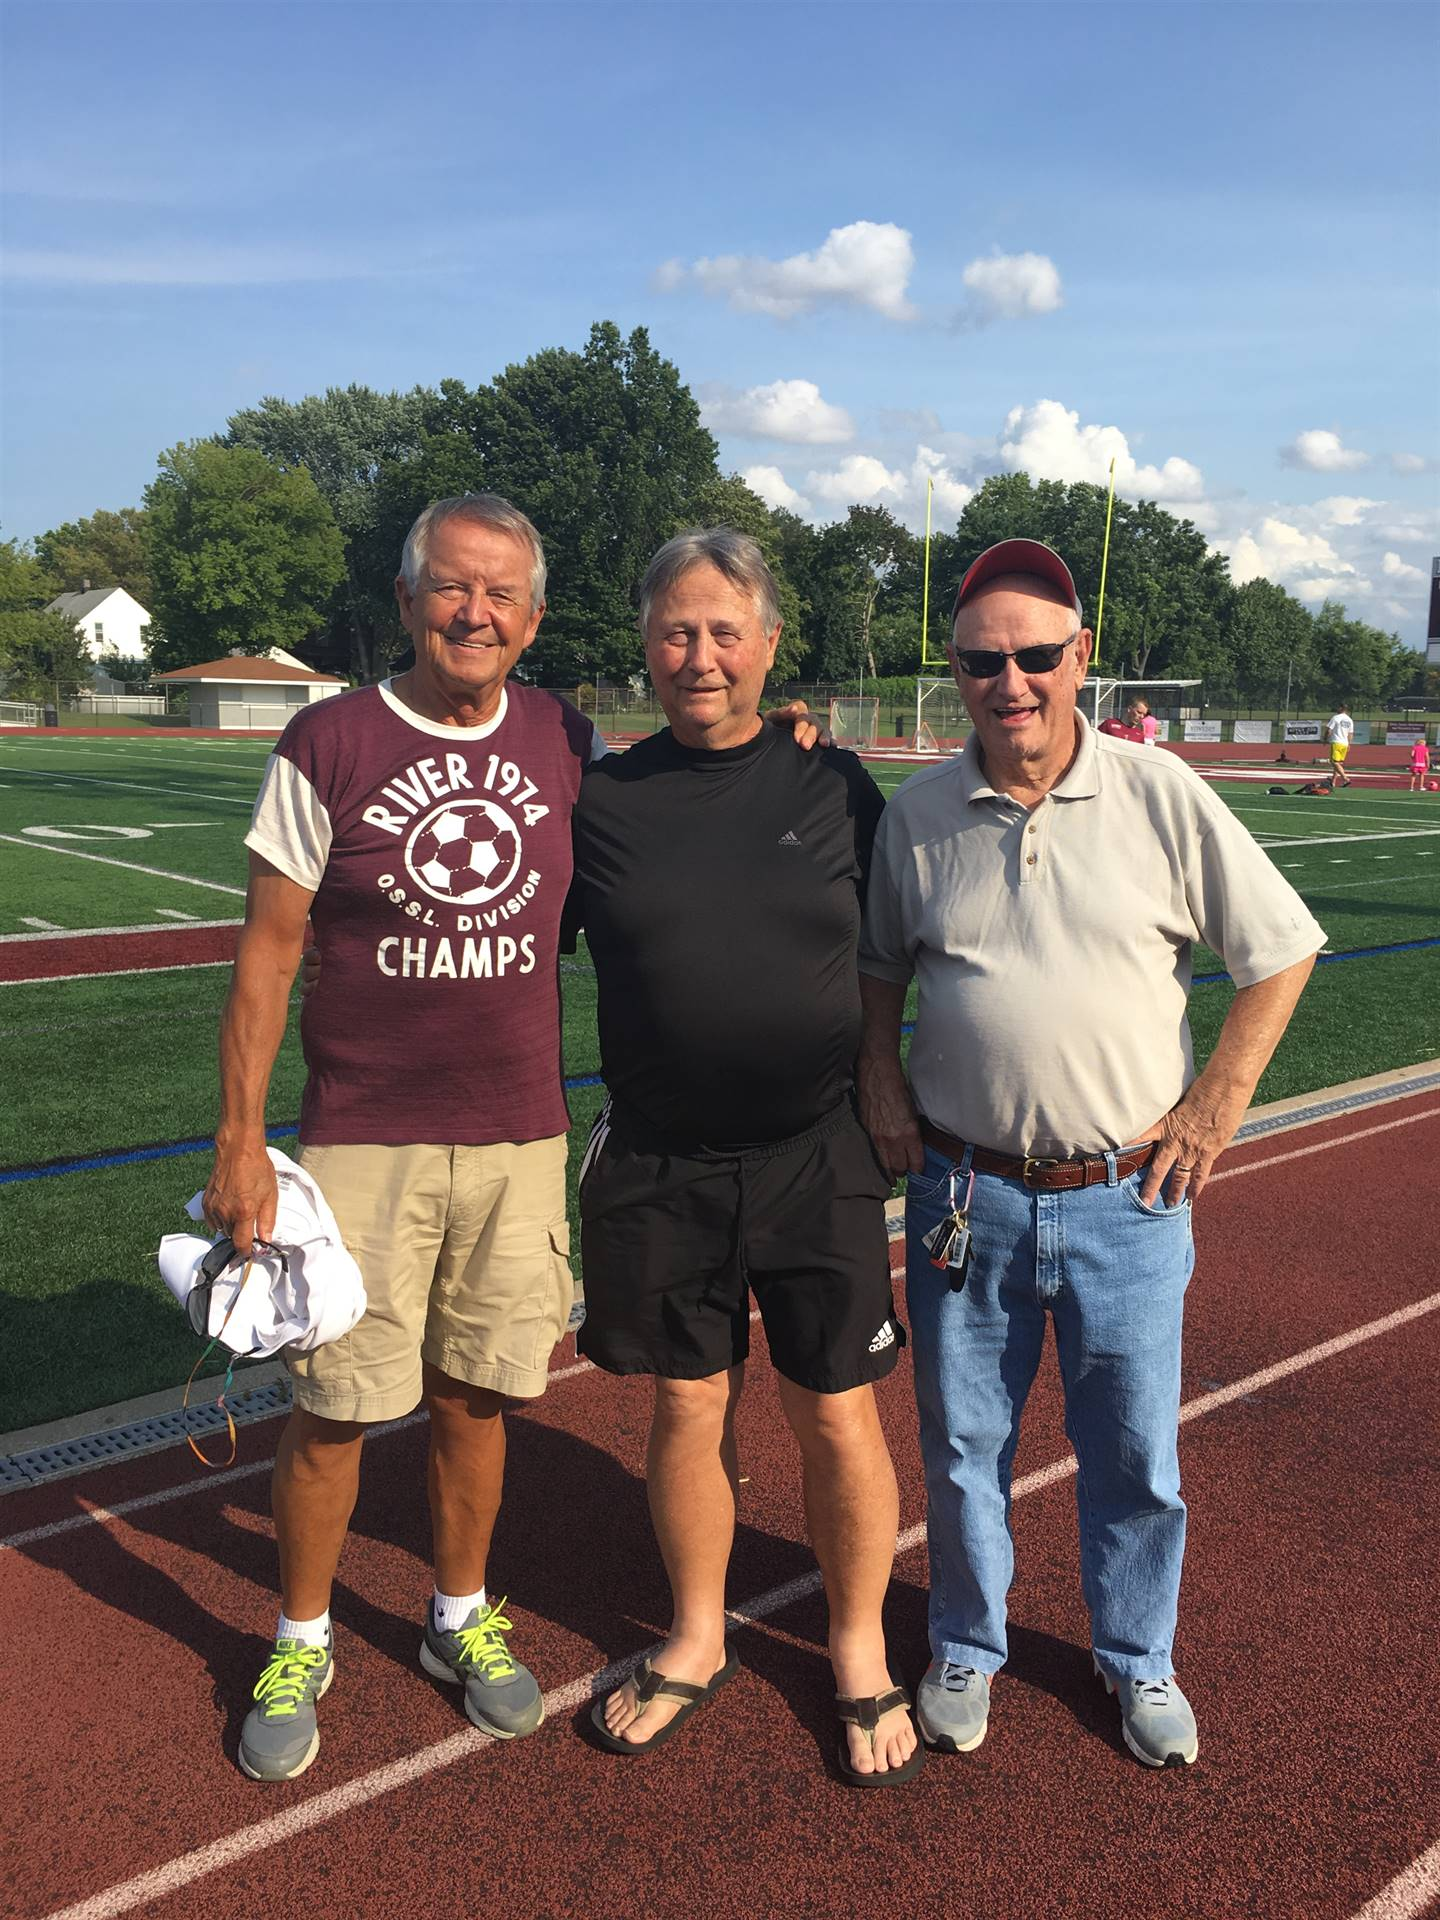 Former Head Coach Pat Gillespie, along with two of his assistants, Les Szabo and Larry Shank.